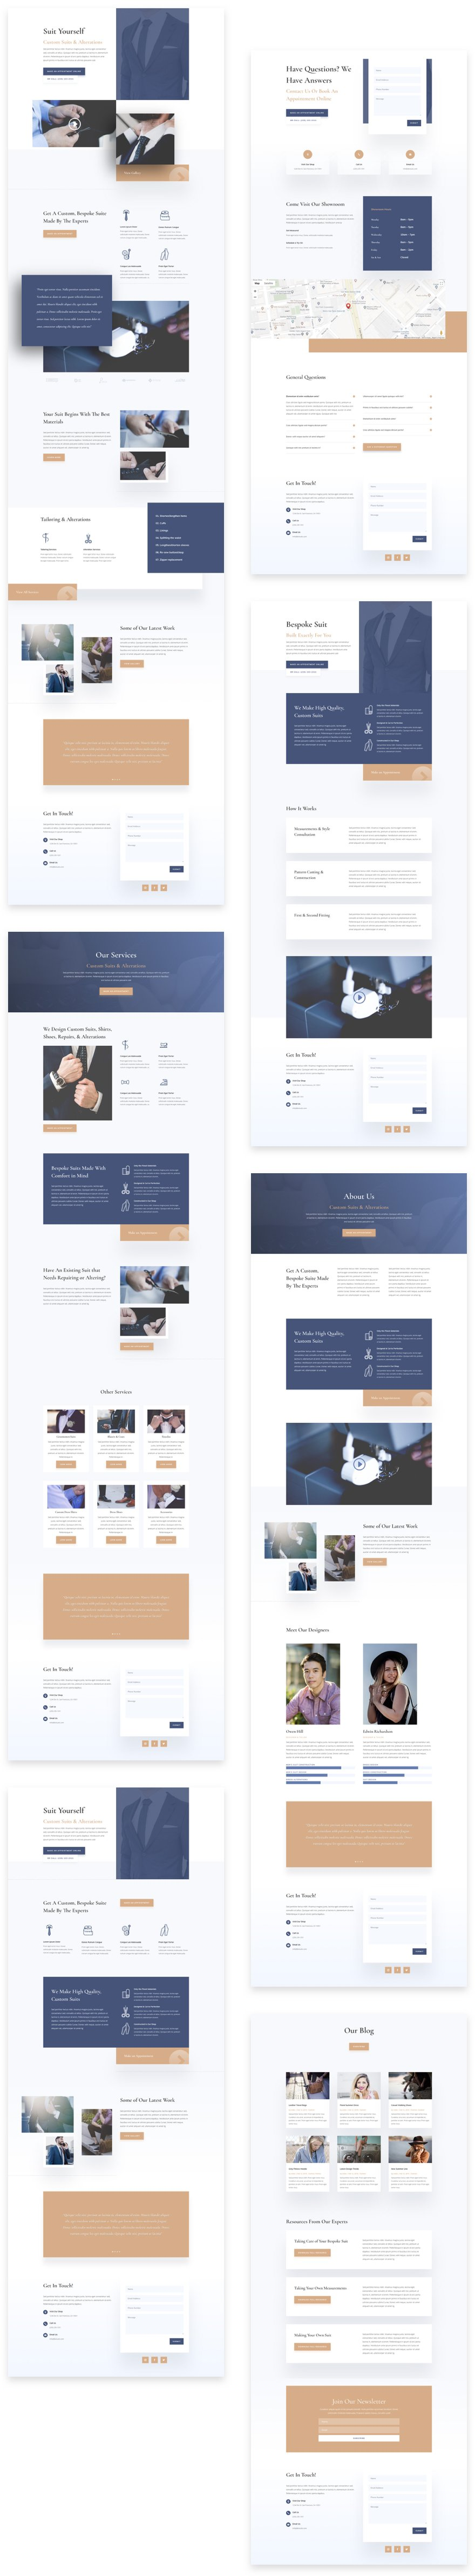 Get a FREE Suit Tailor Layout Pack for Divi